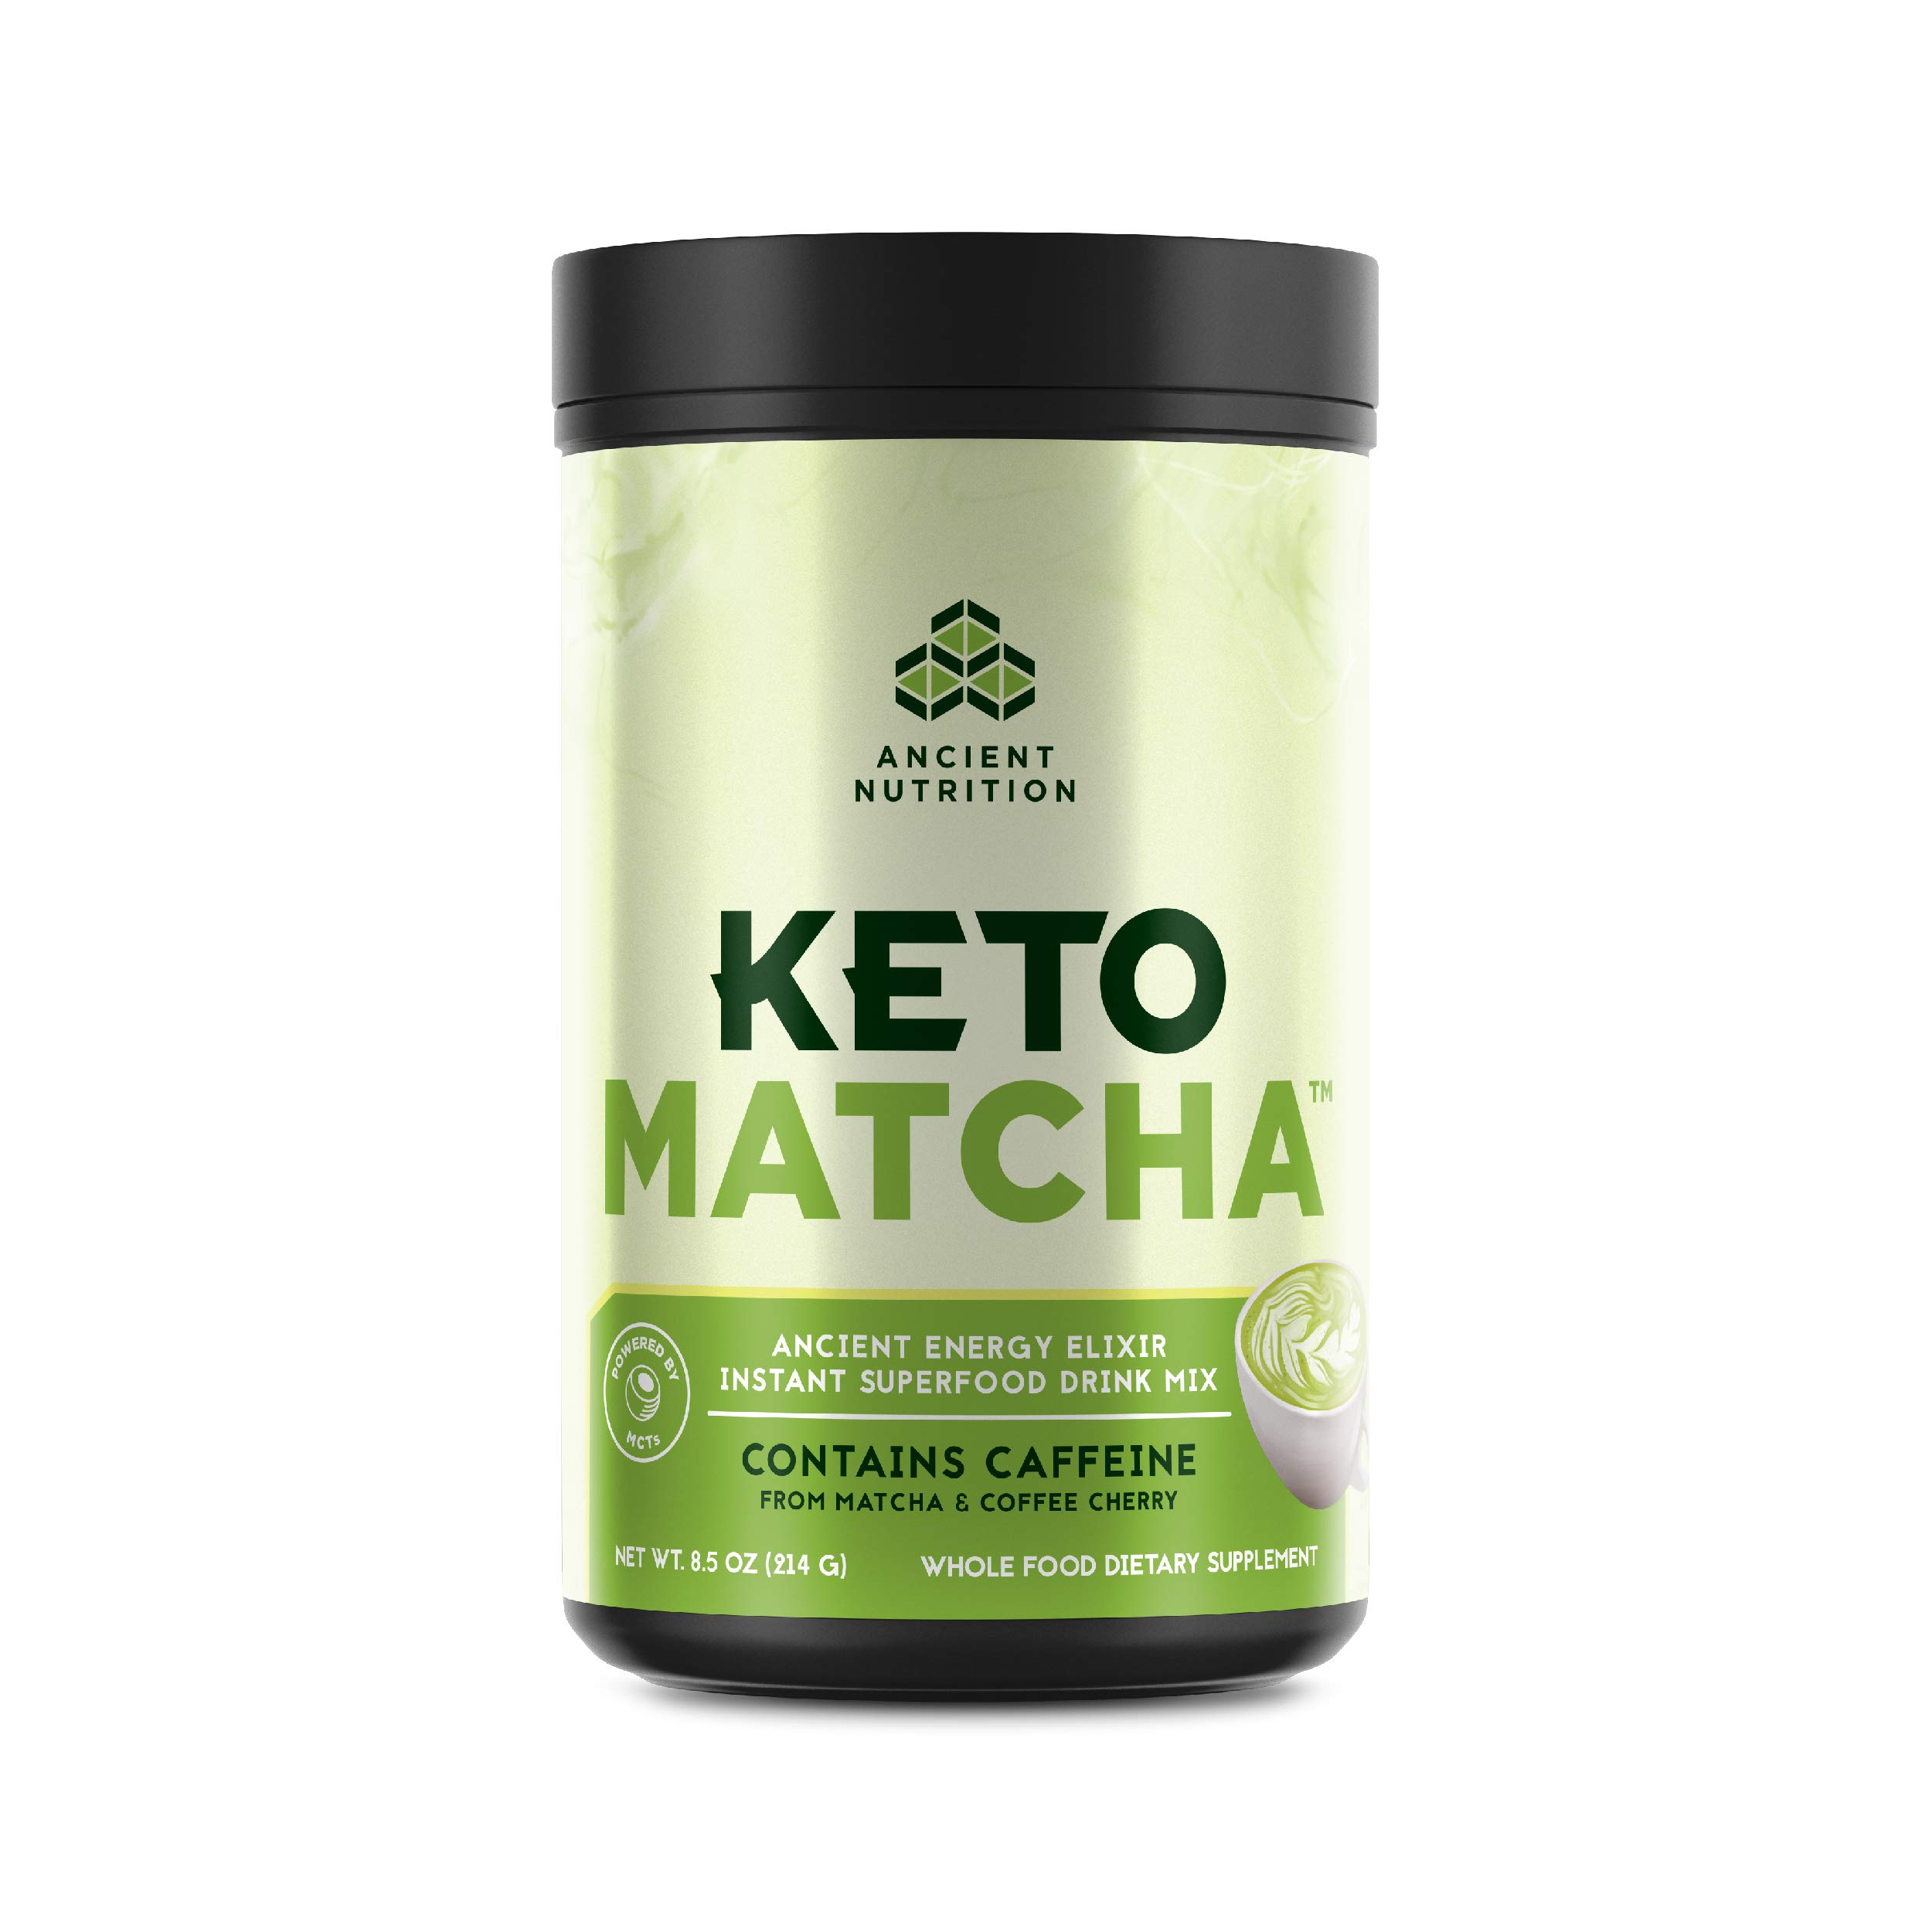 Ancient Nutrition KetoMATCHA Energy Elixir Powder, 20 Servings, Keto Diet Supplement, Hydrolyzed Collagen Peptides, MCTs from Coconut, Green Tea Leaf, Energy Booster